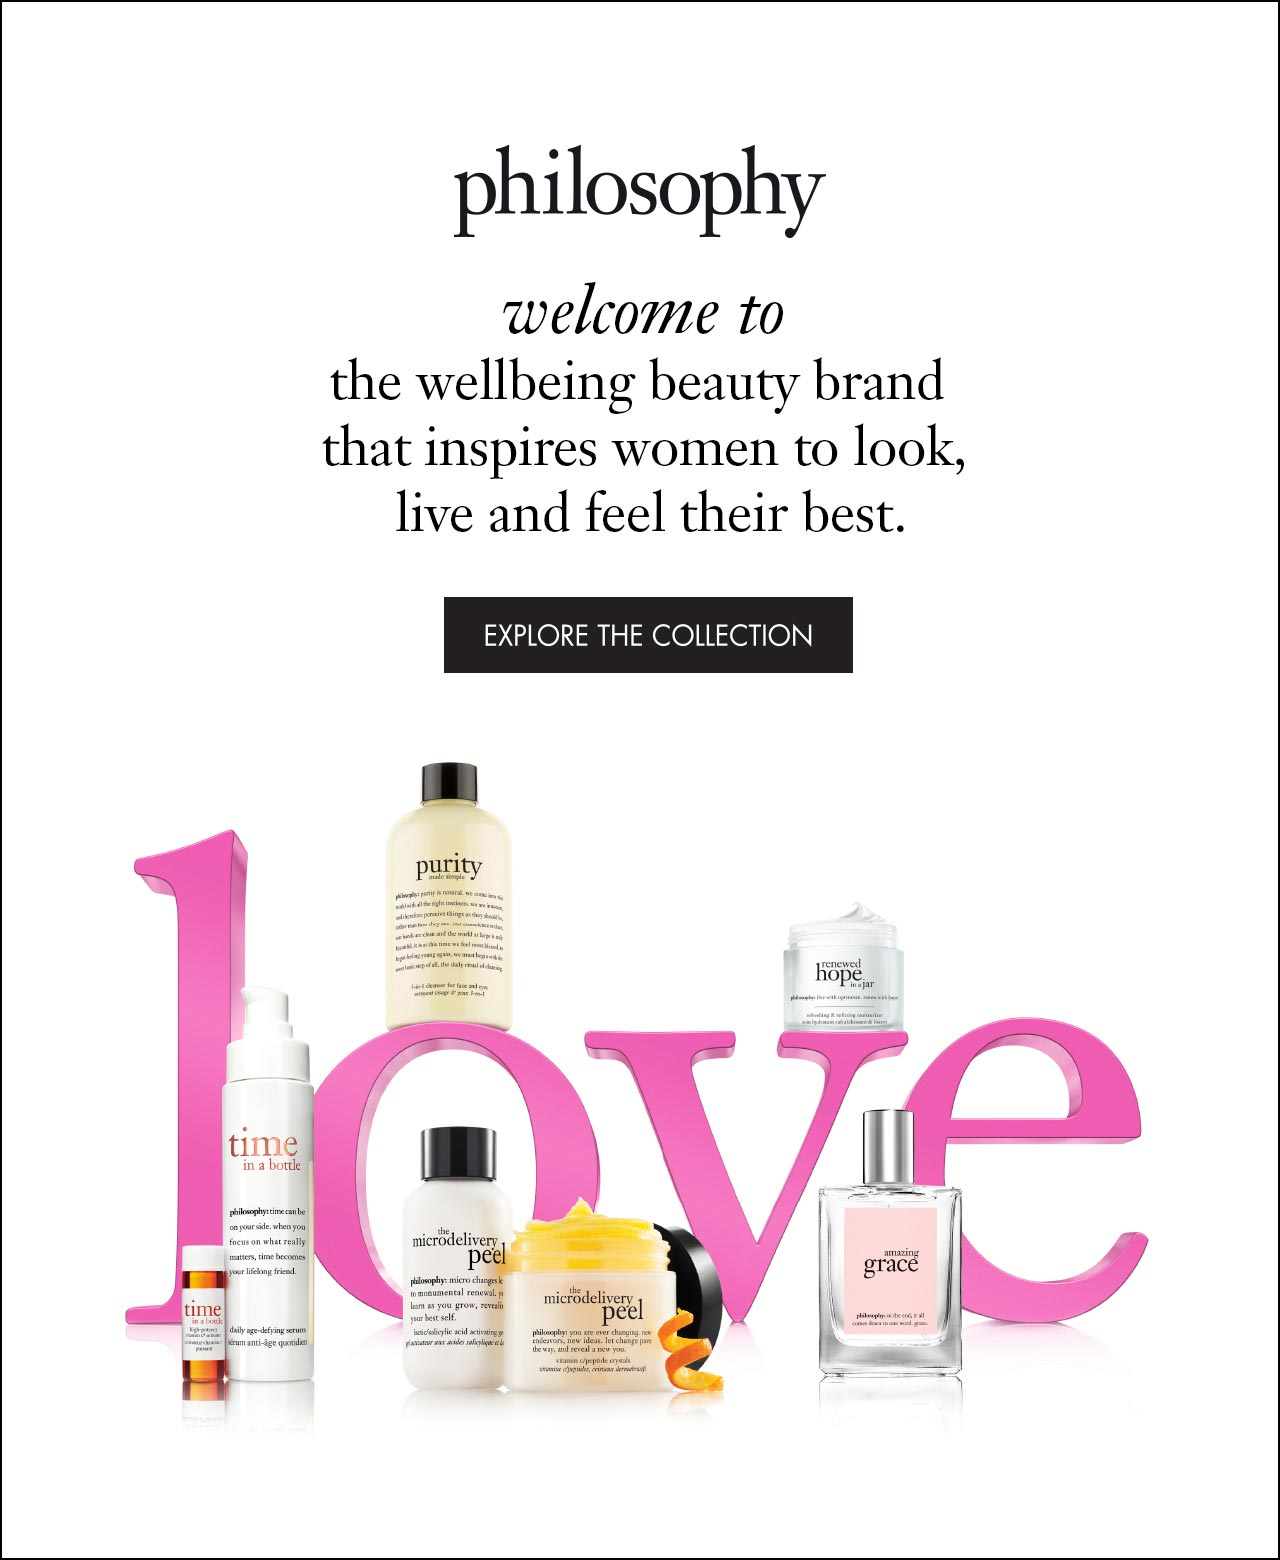 philosophy welcome to the wellbeing beauty brand that inspires women to look, live and feel their best.